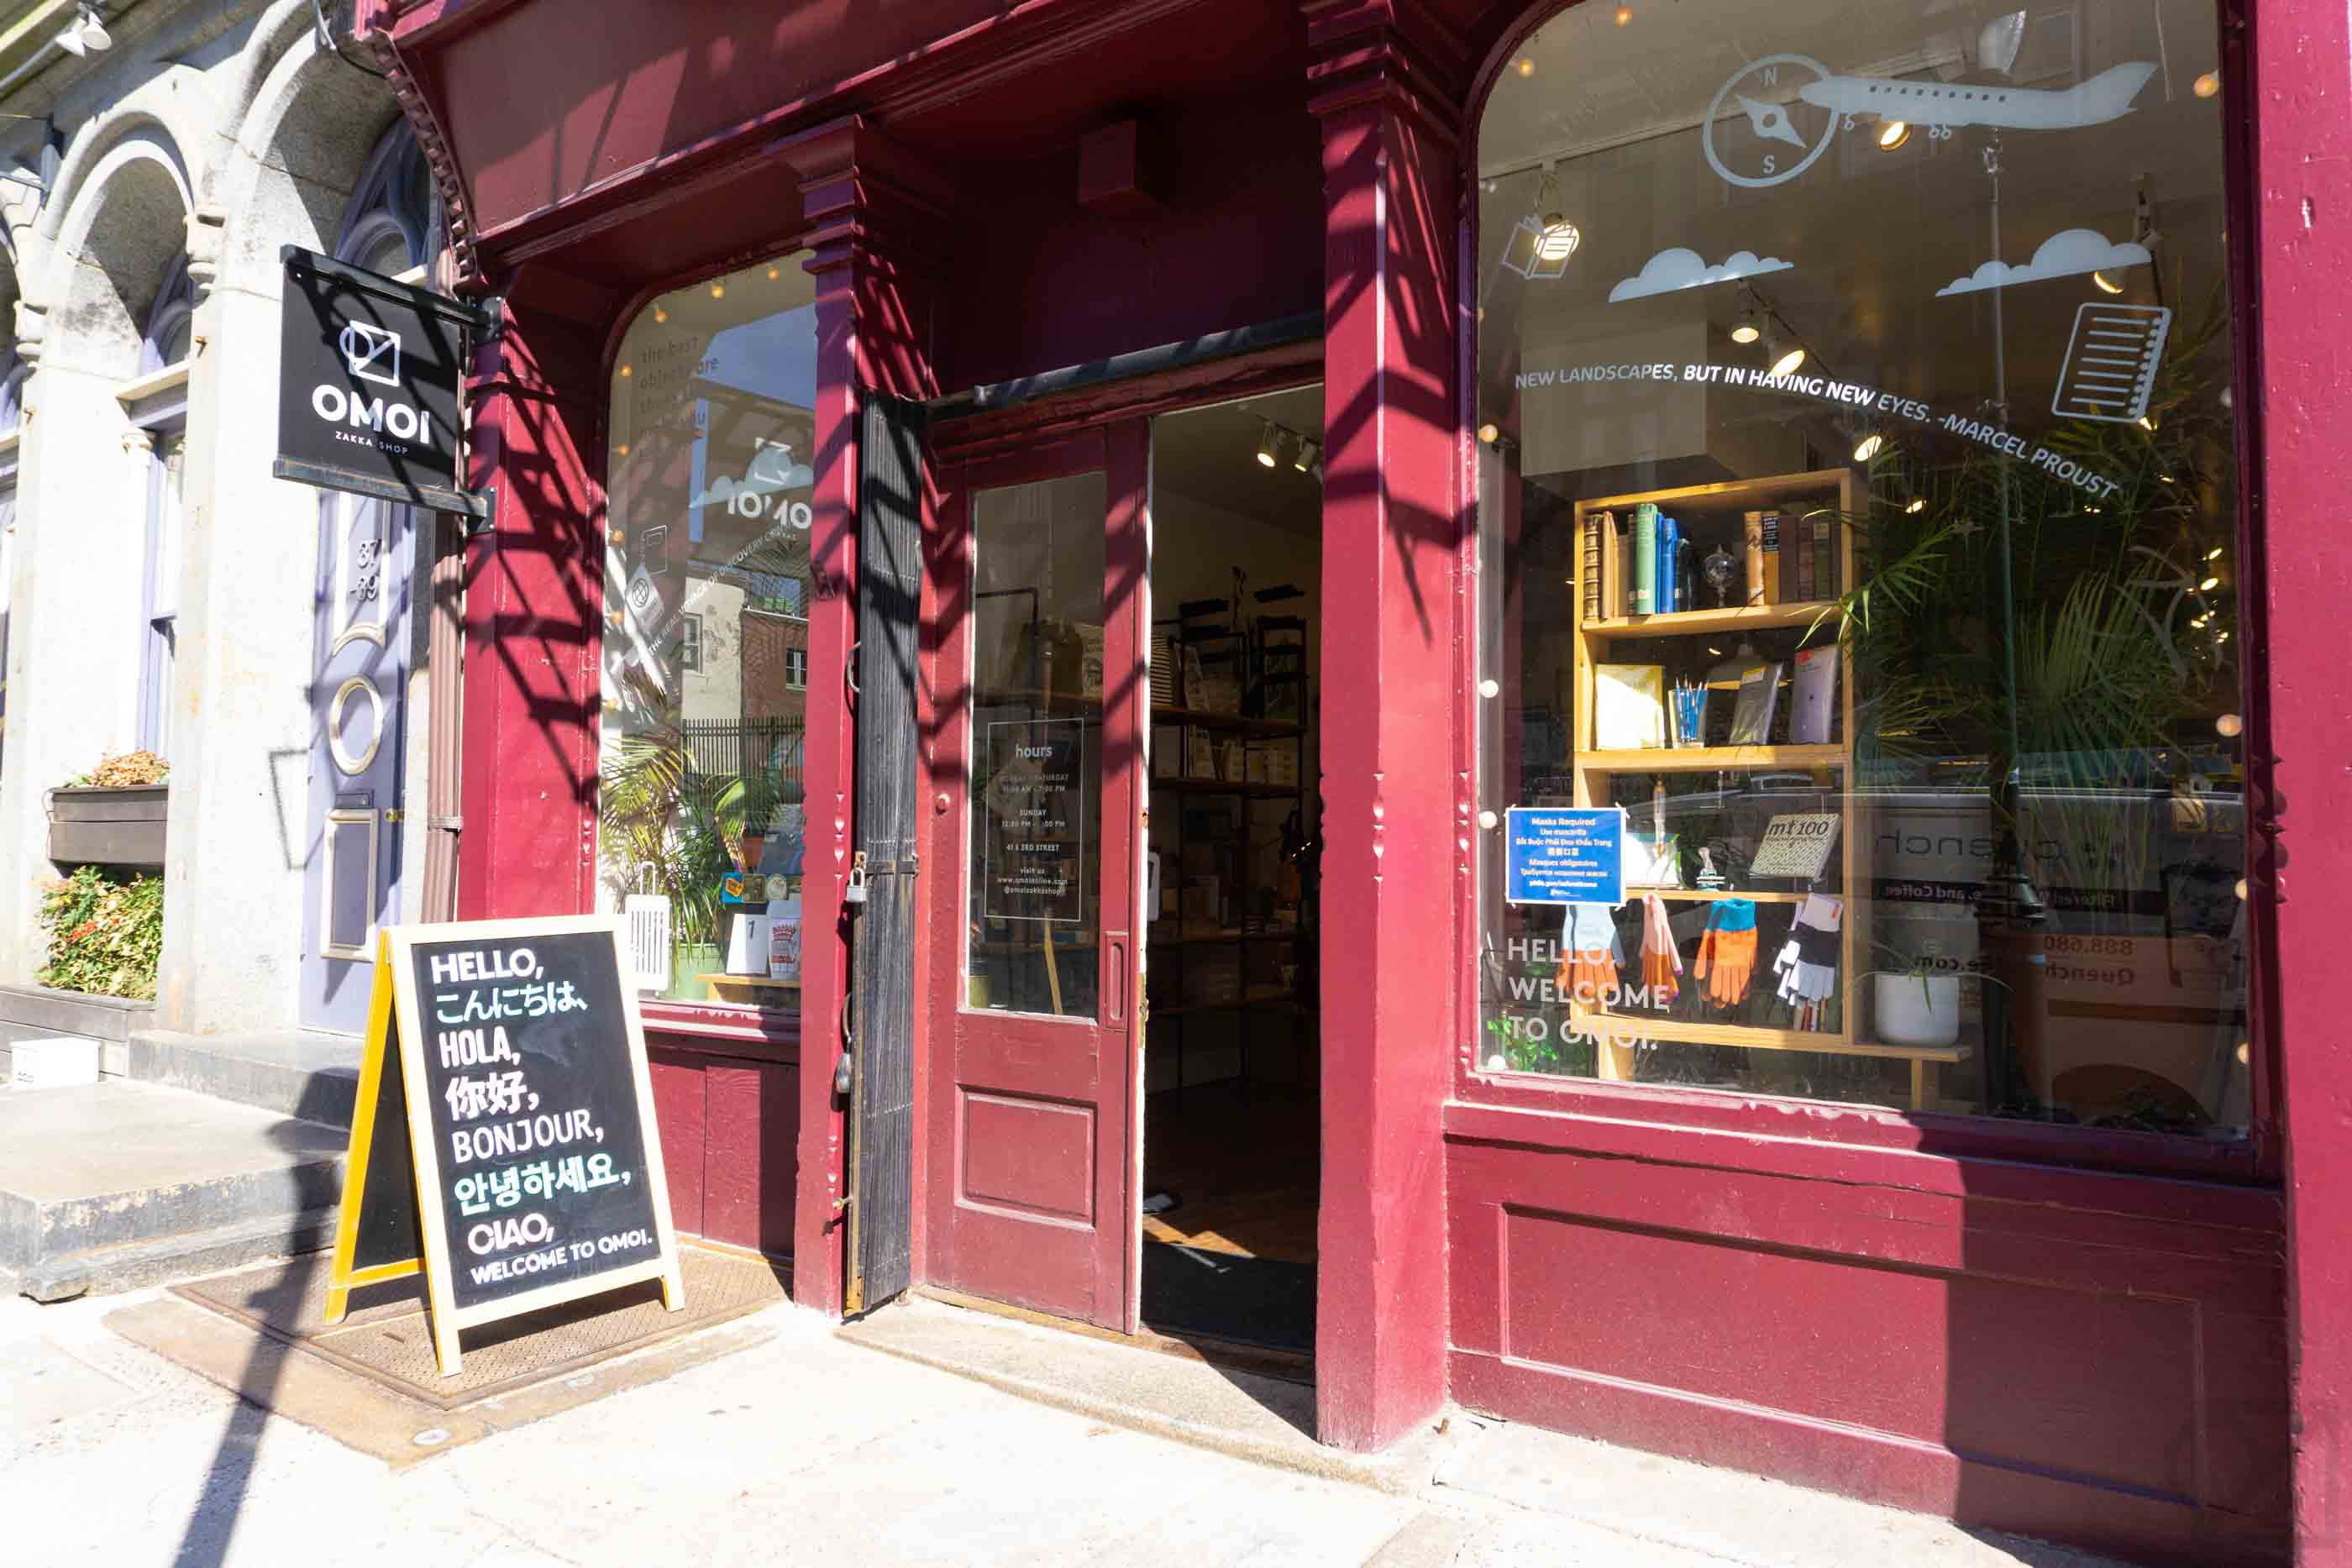 And the storefront at our Old City location, ready and waiting for your visit.